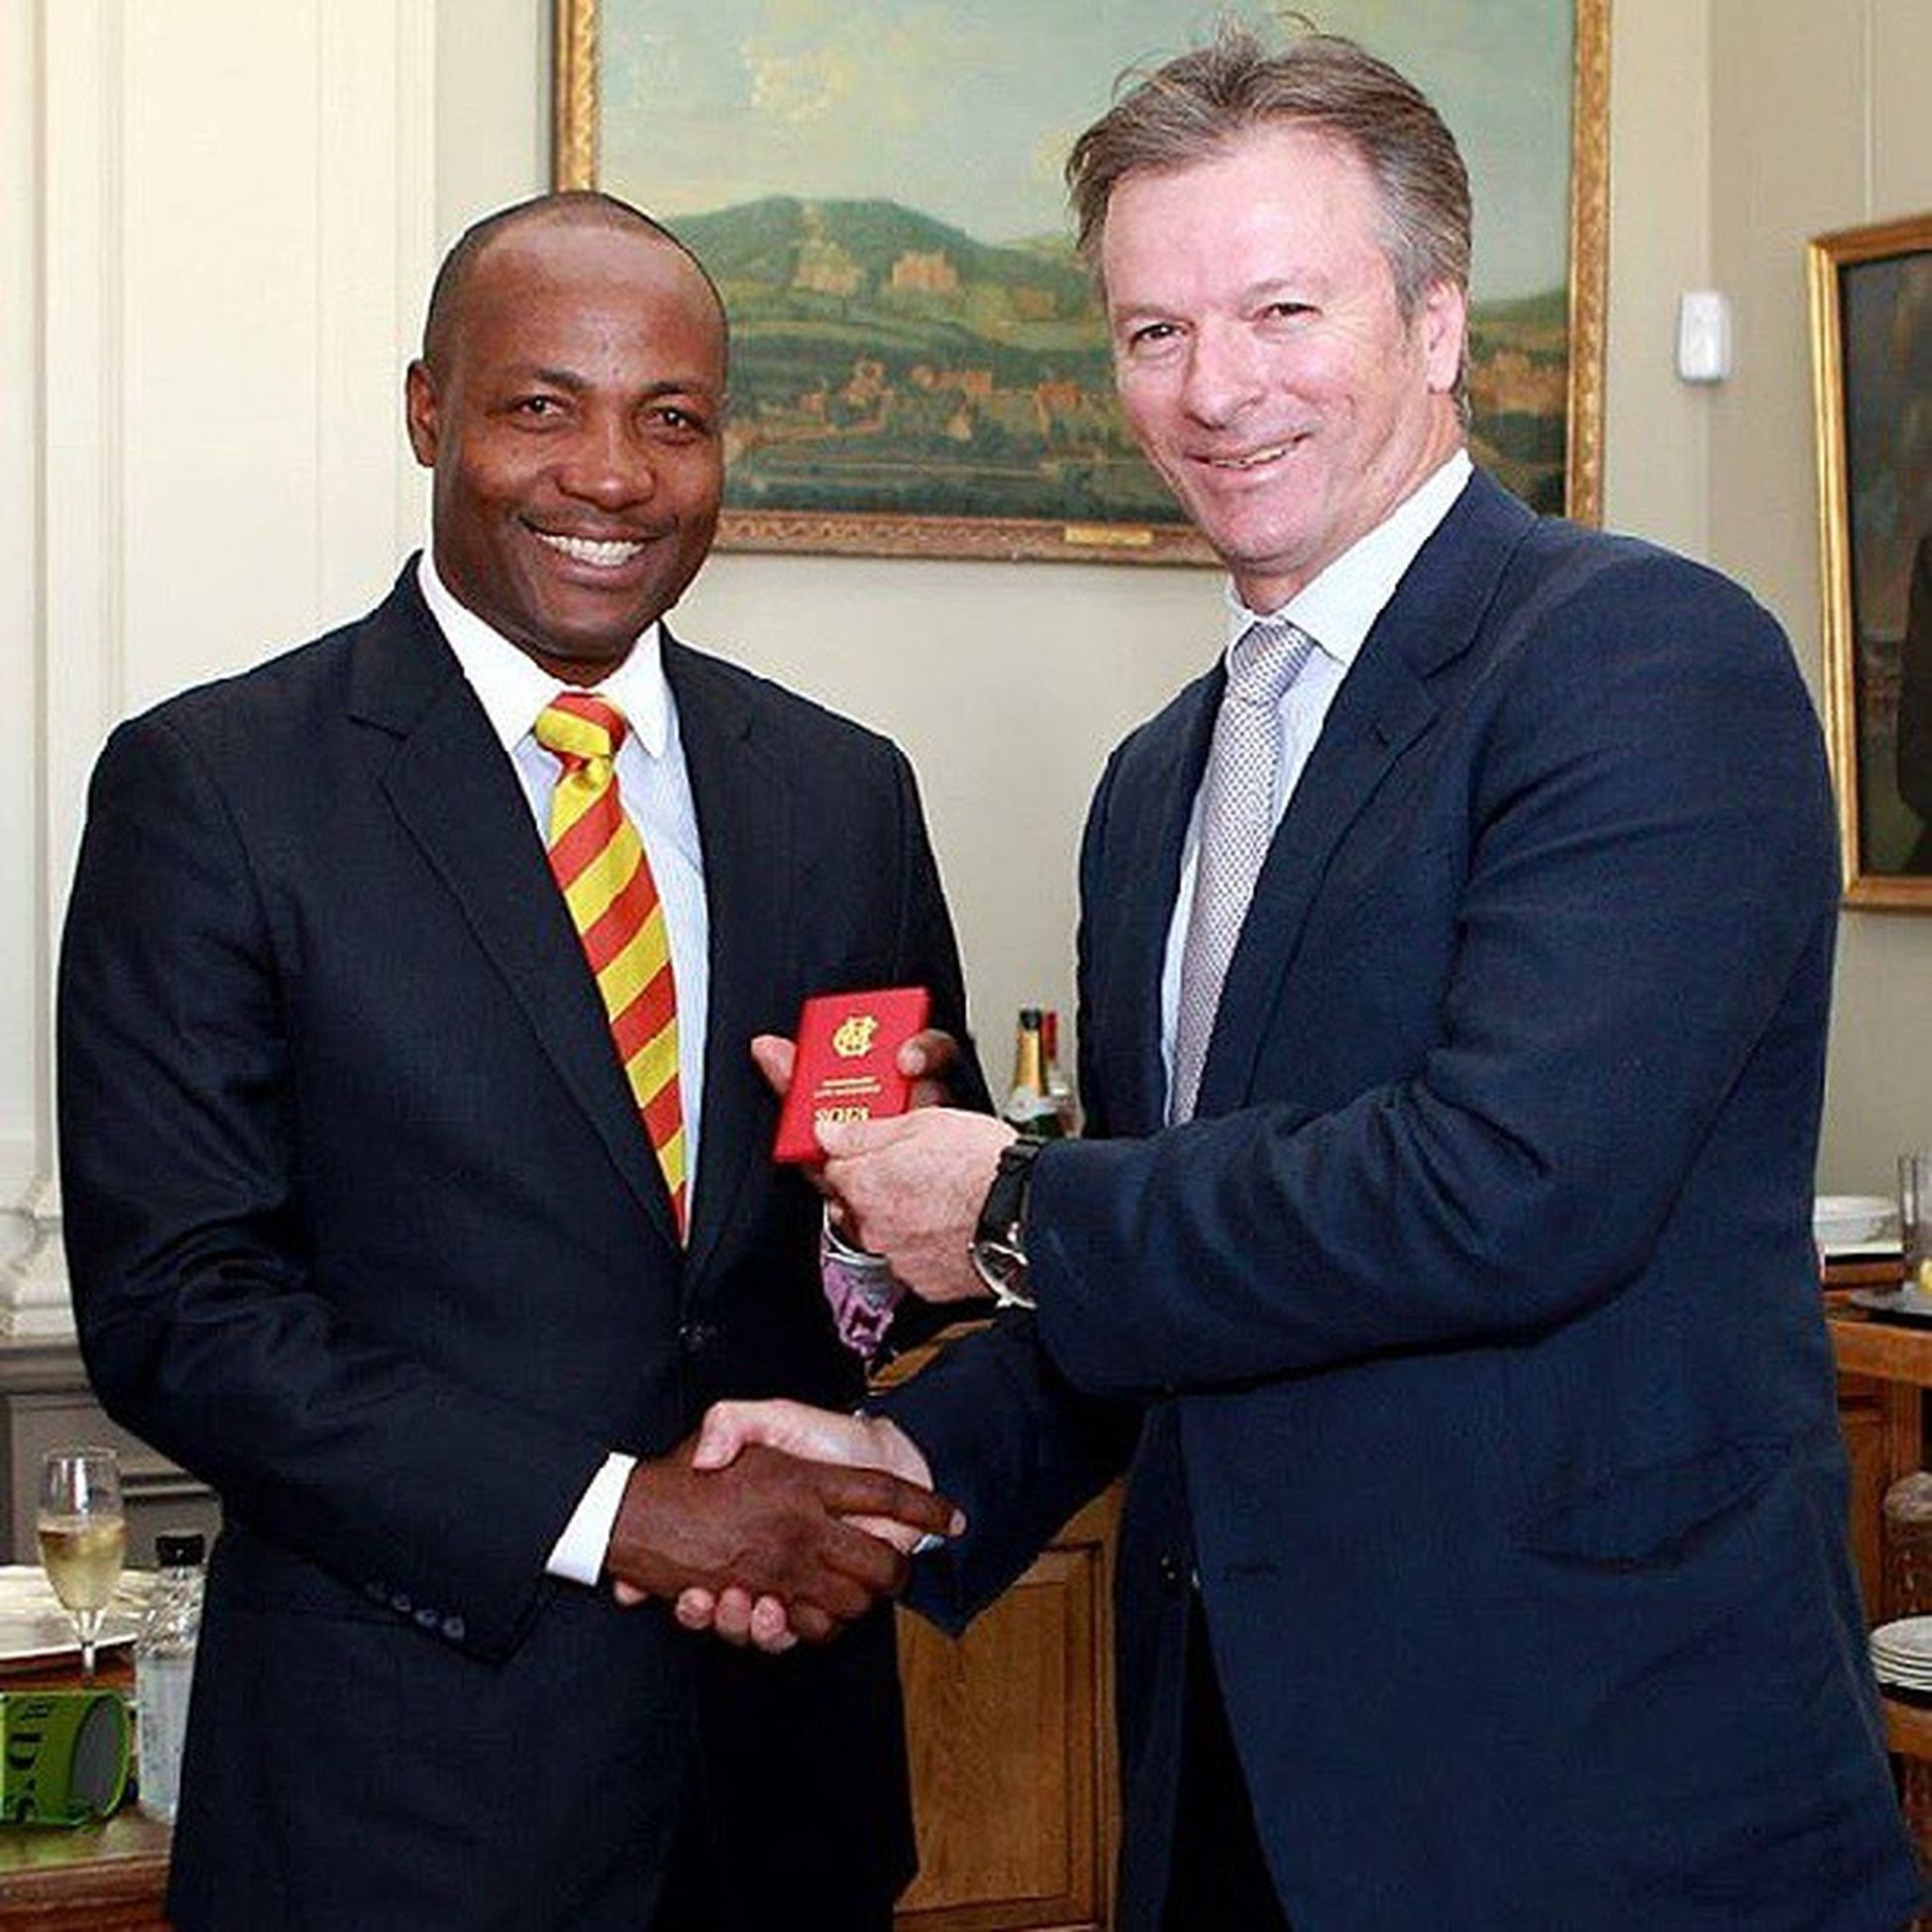 Mcc  @CricketAus have just made @BrianLara @westindies an MCCHonoraryLifeMember of the Club and here is SteveWaugh presenting him with the little red book. — with BrianLara at Lord's CricketGround.